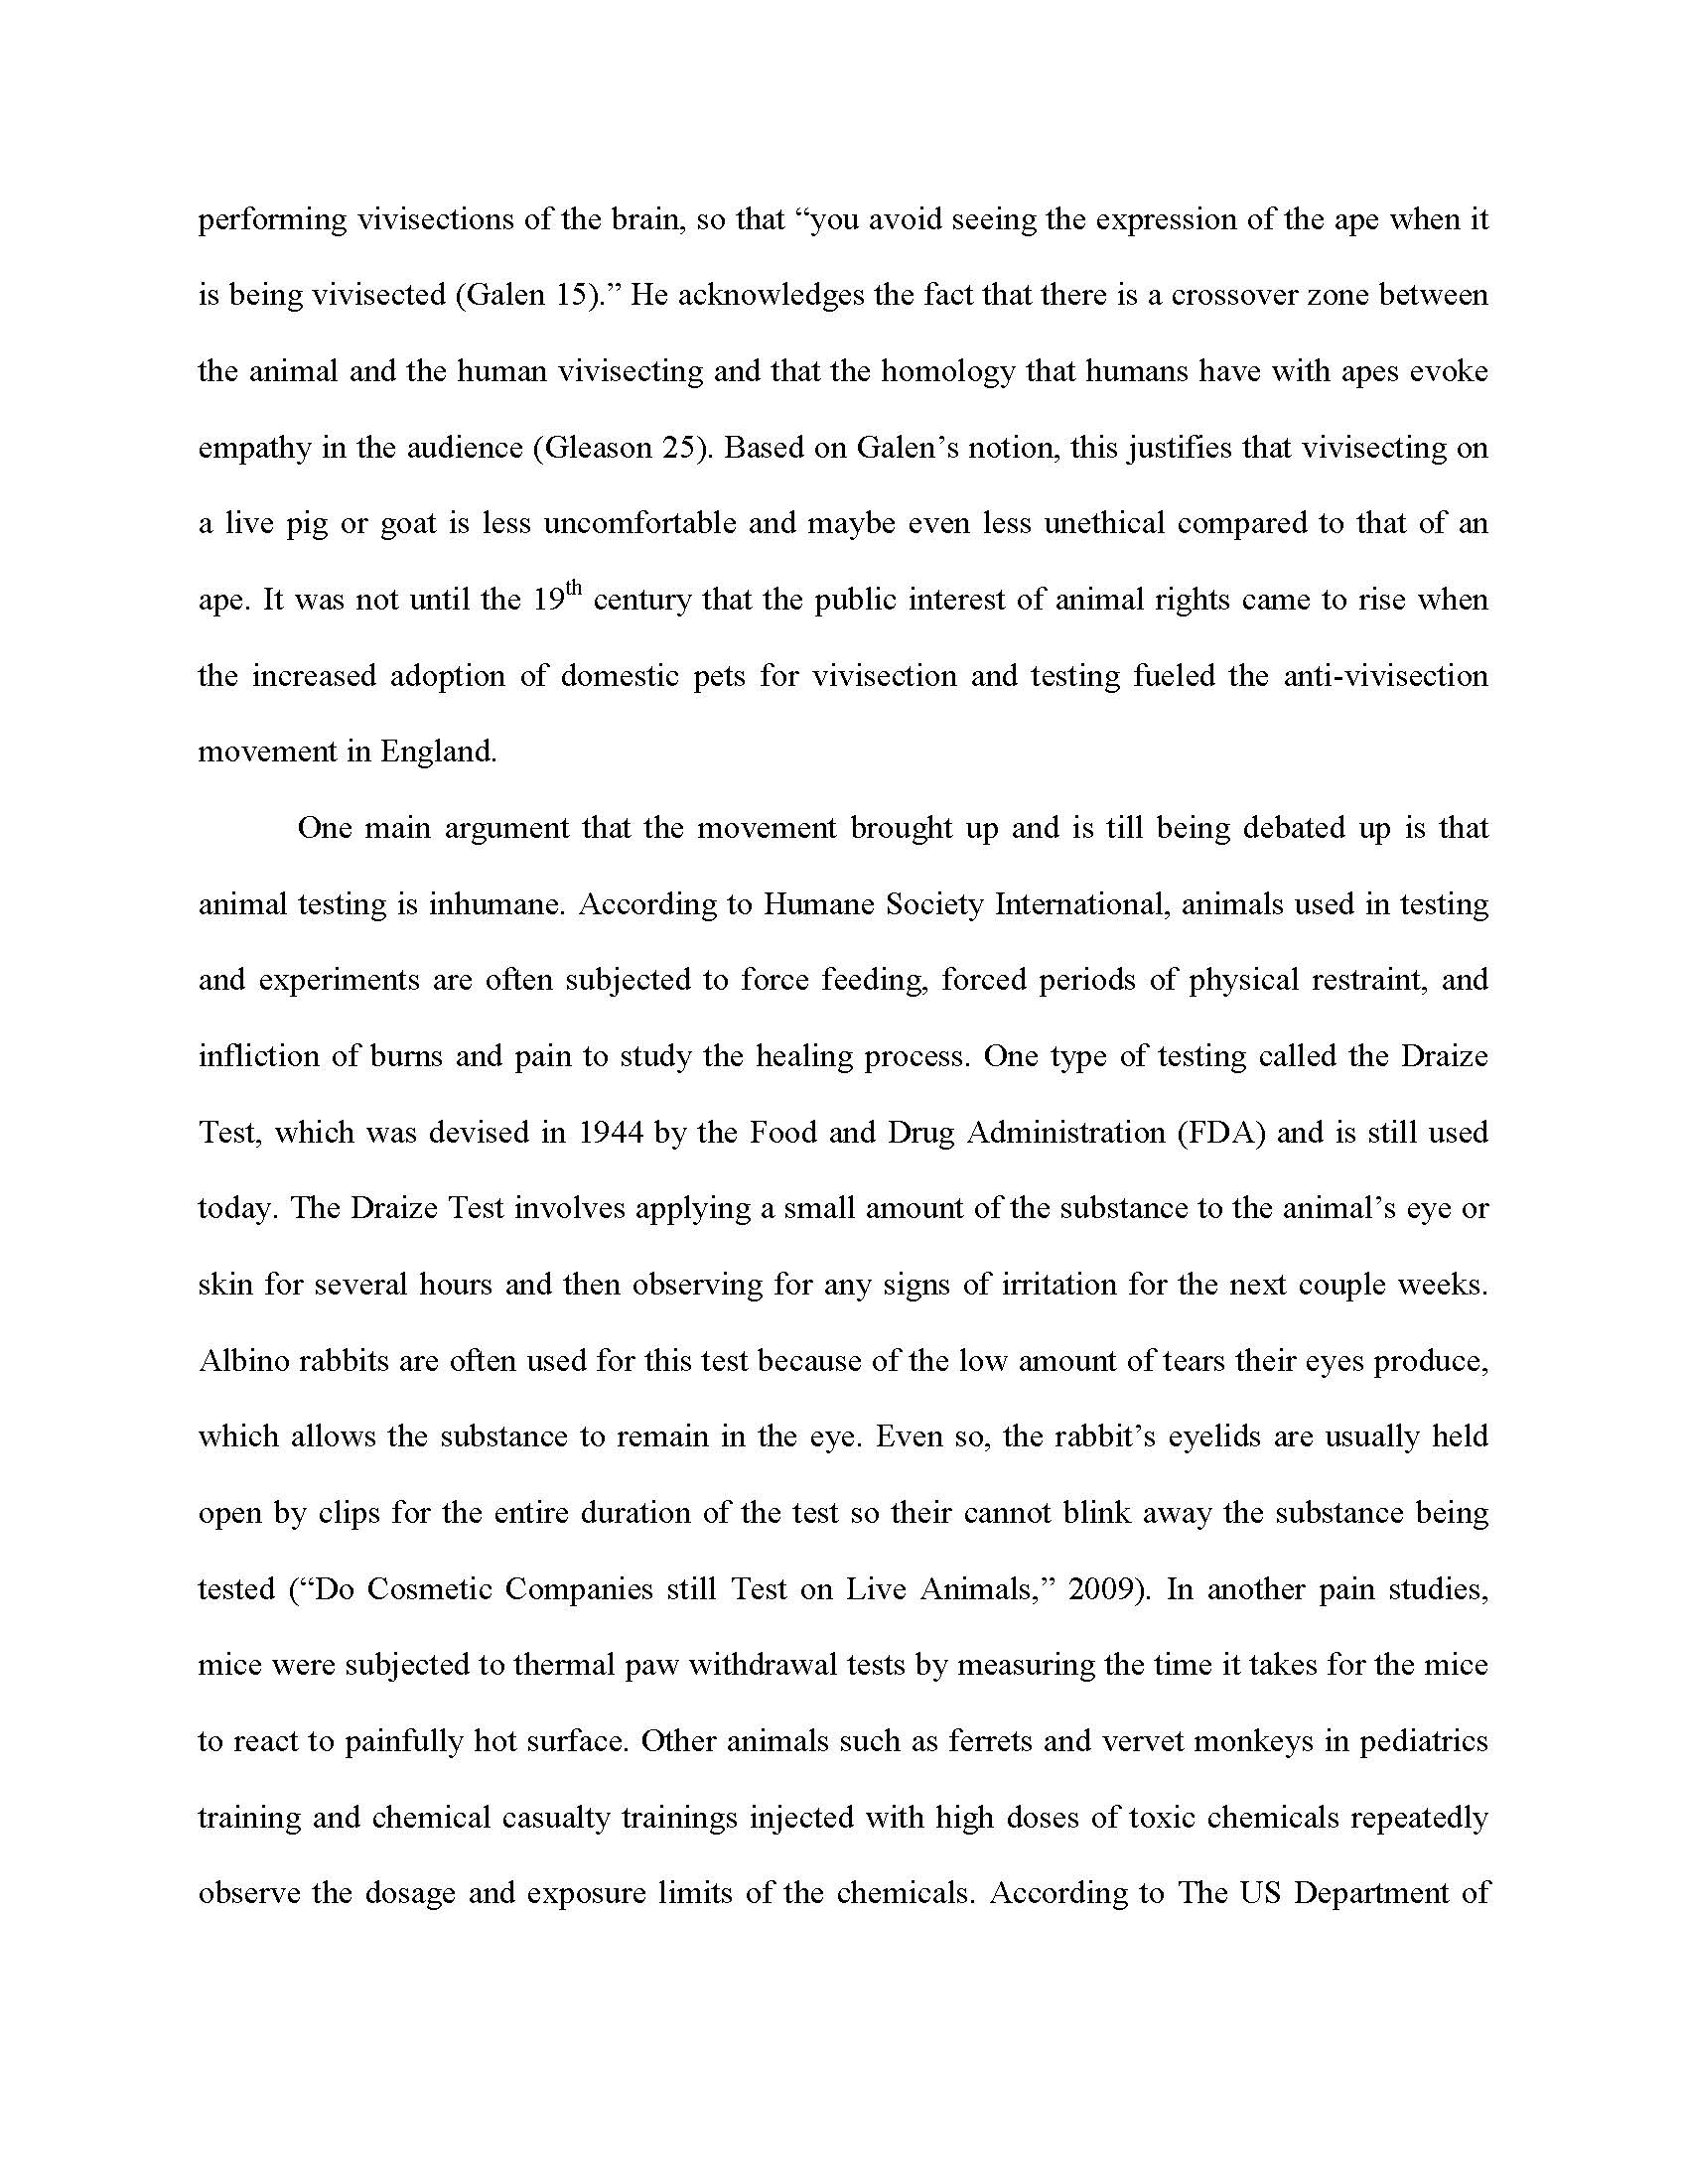 008 Cruelty To Animals Essay Example Animal Testing Final Page 2 Wondrous In 100 Words Persuasive Towards Wikipedia Full